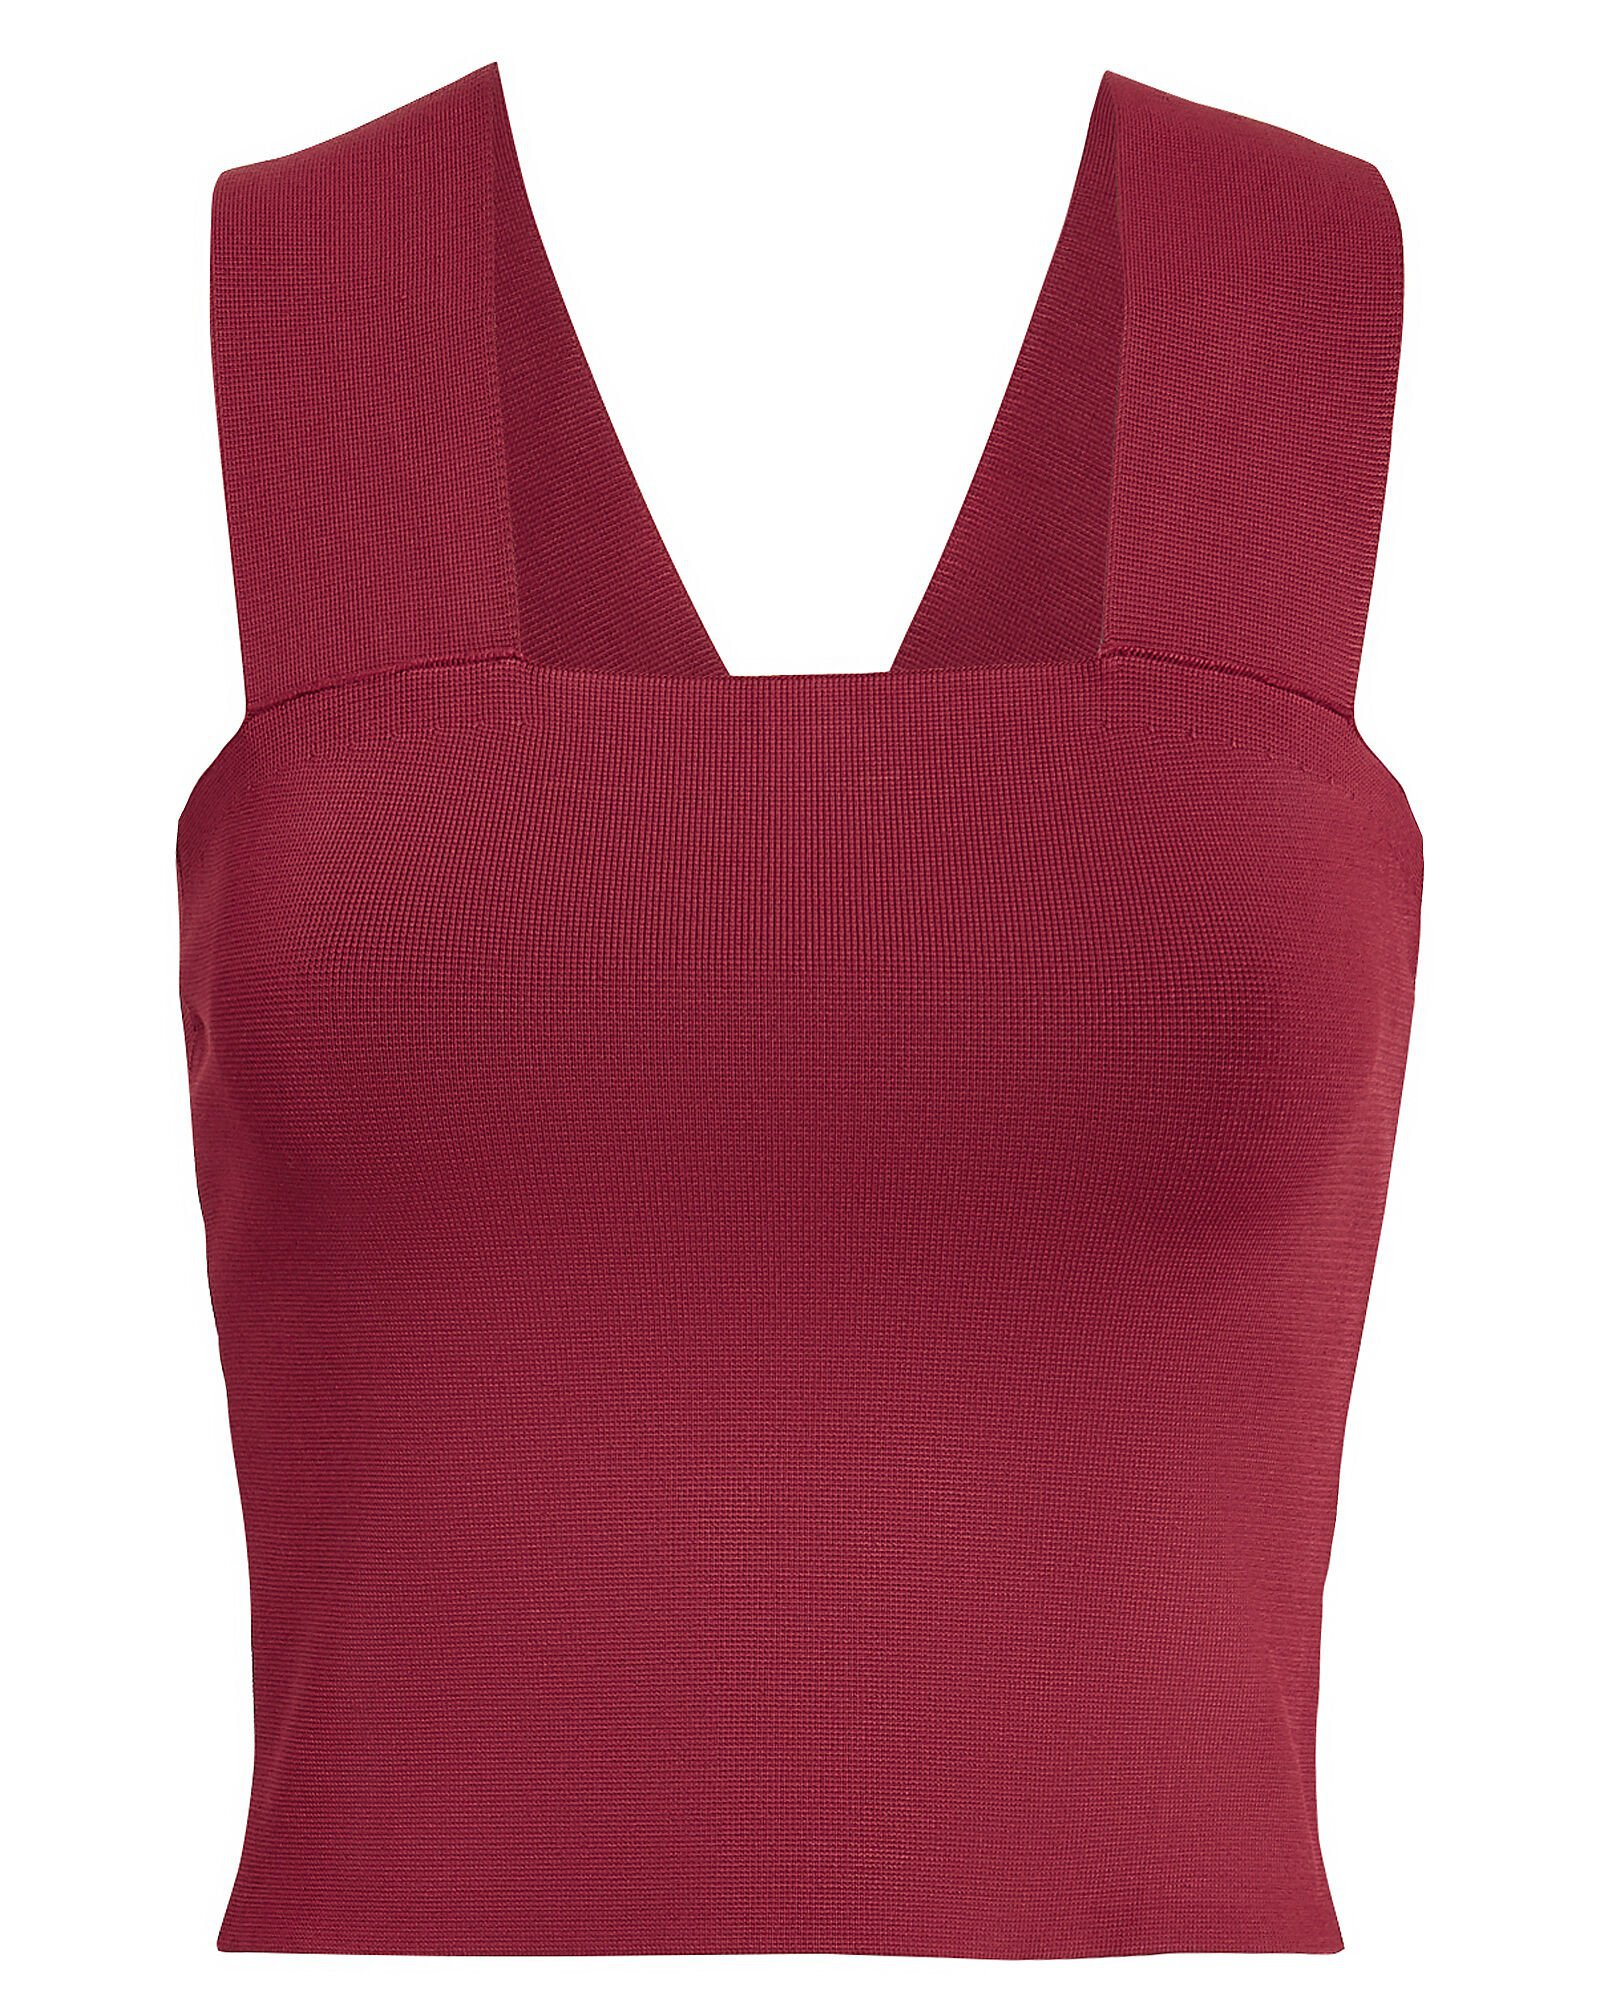 Lia Cropped Tank Top